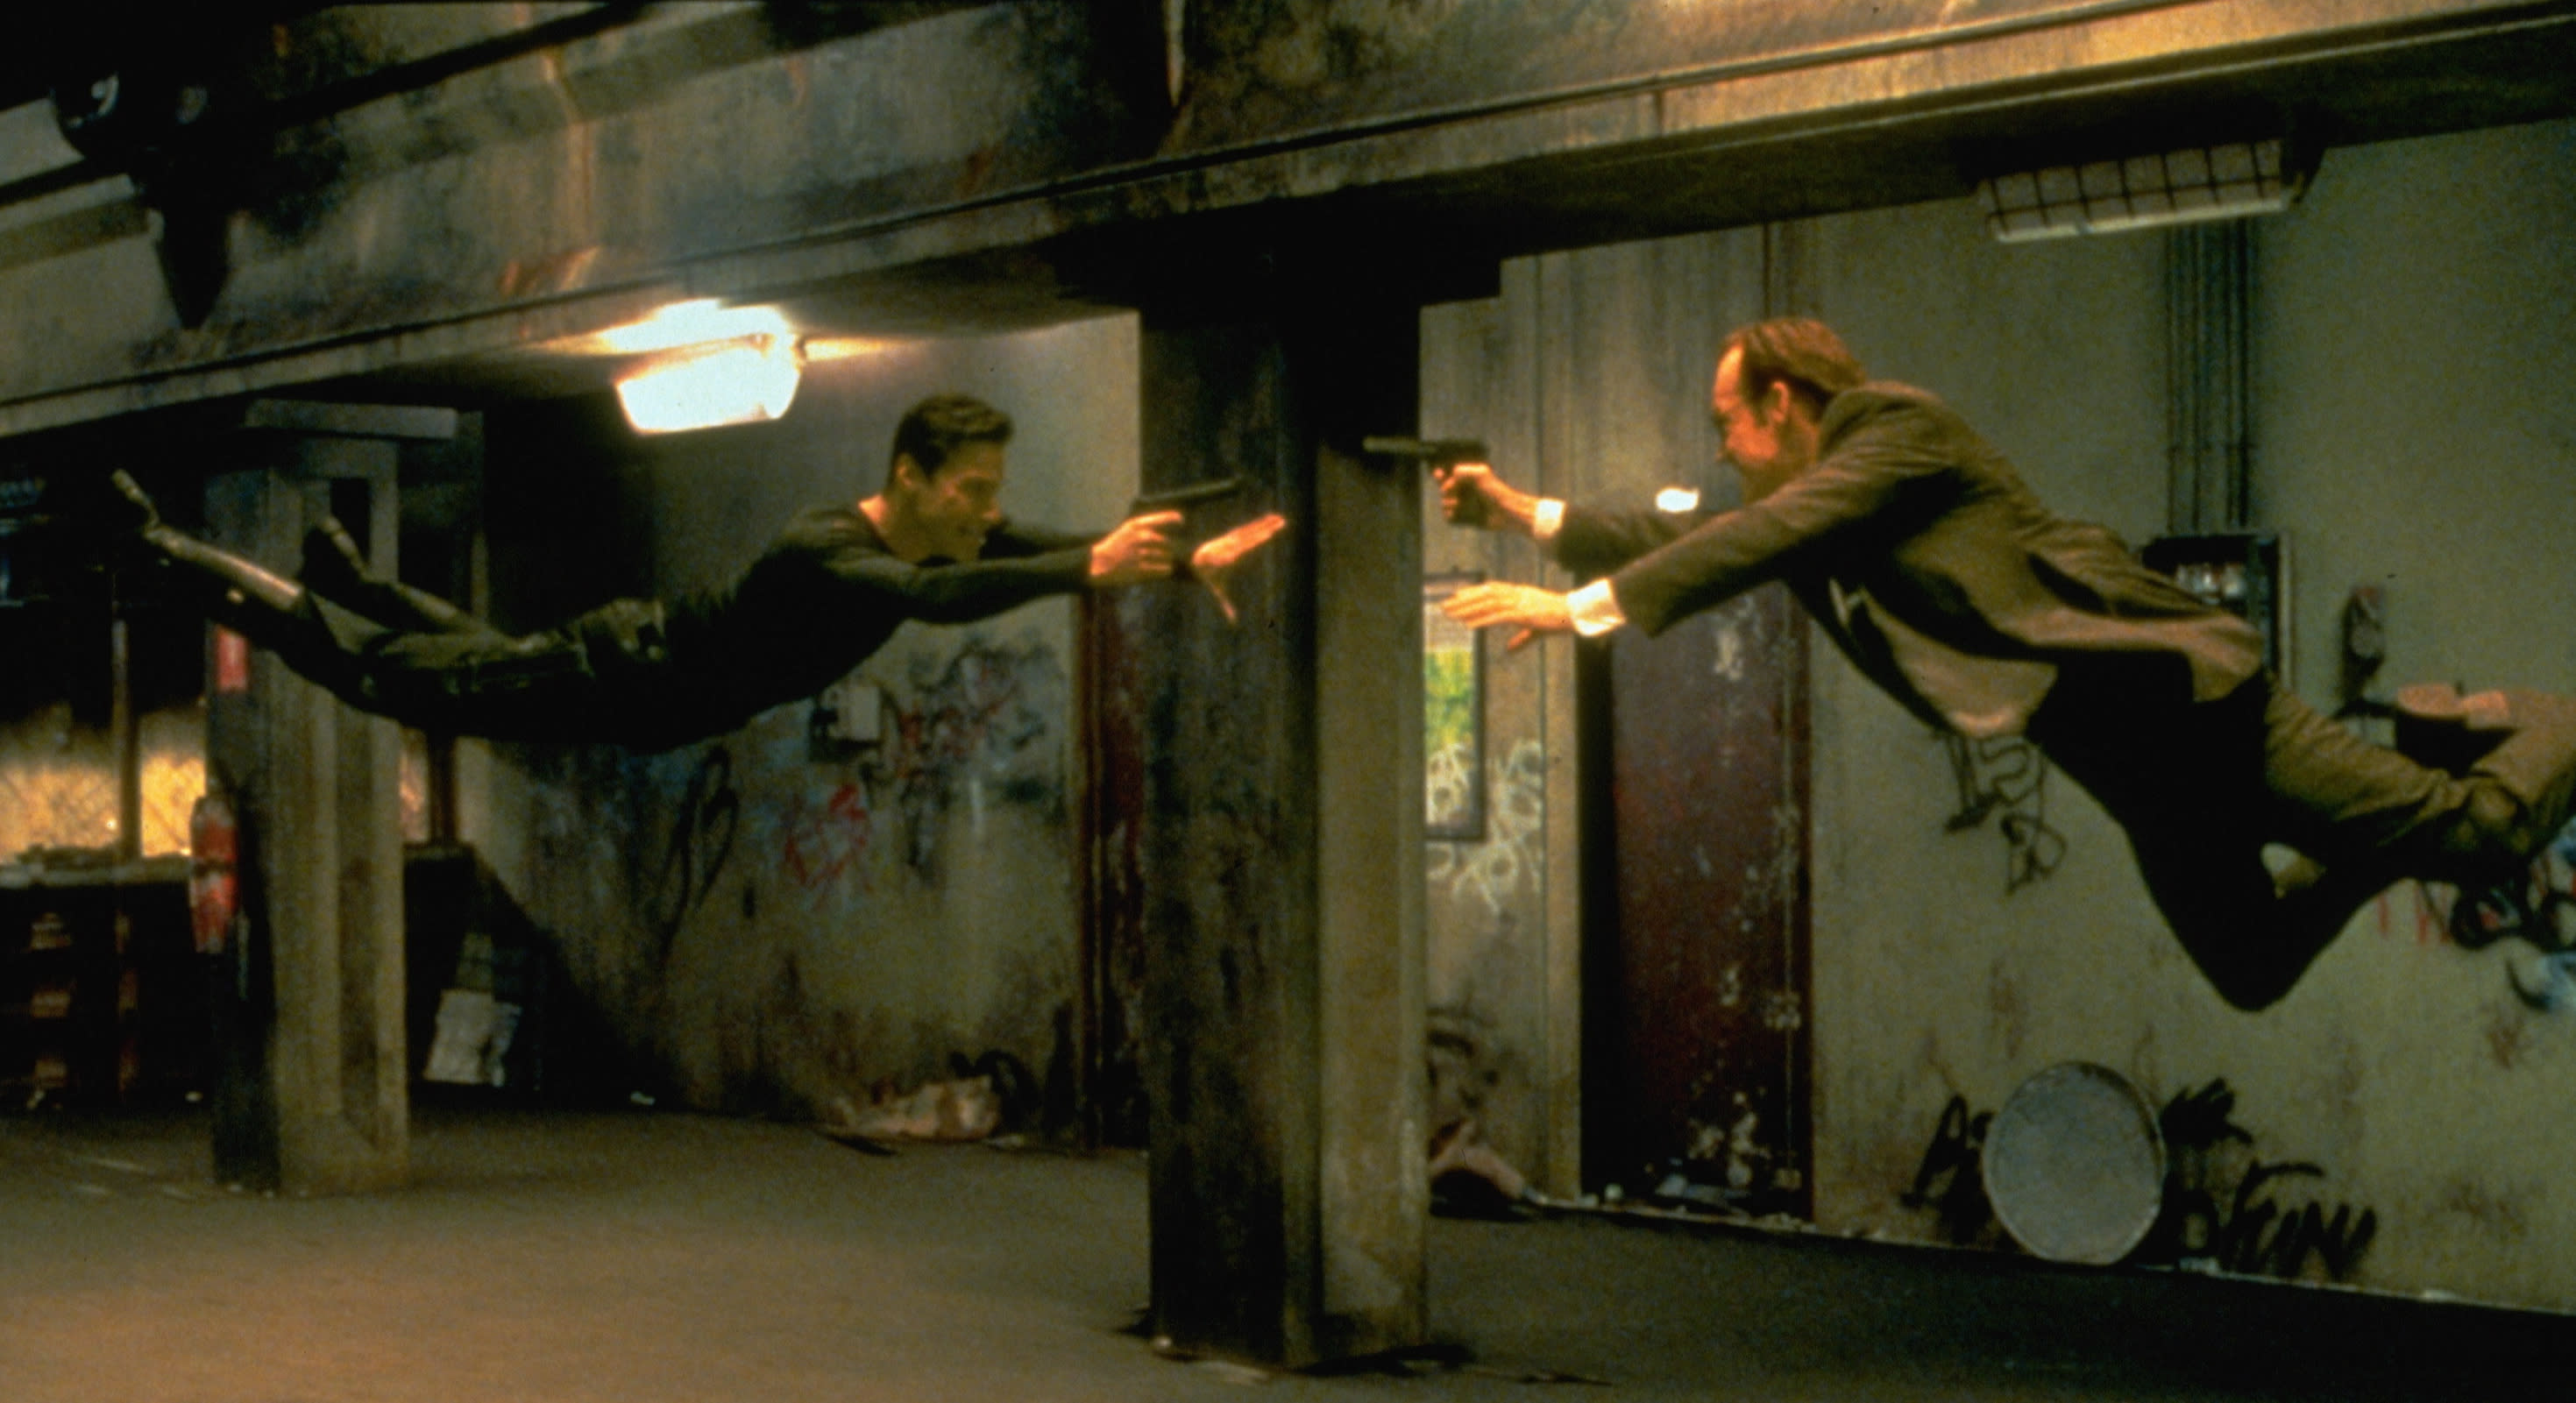 Keanu Reeves and Hugo Weaving face each other in a scene from the 1999 movie 'The Matrix'. (Photo by Siemoneit/Sygma via Getty Images)